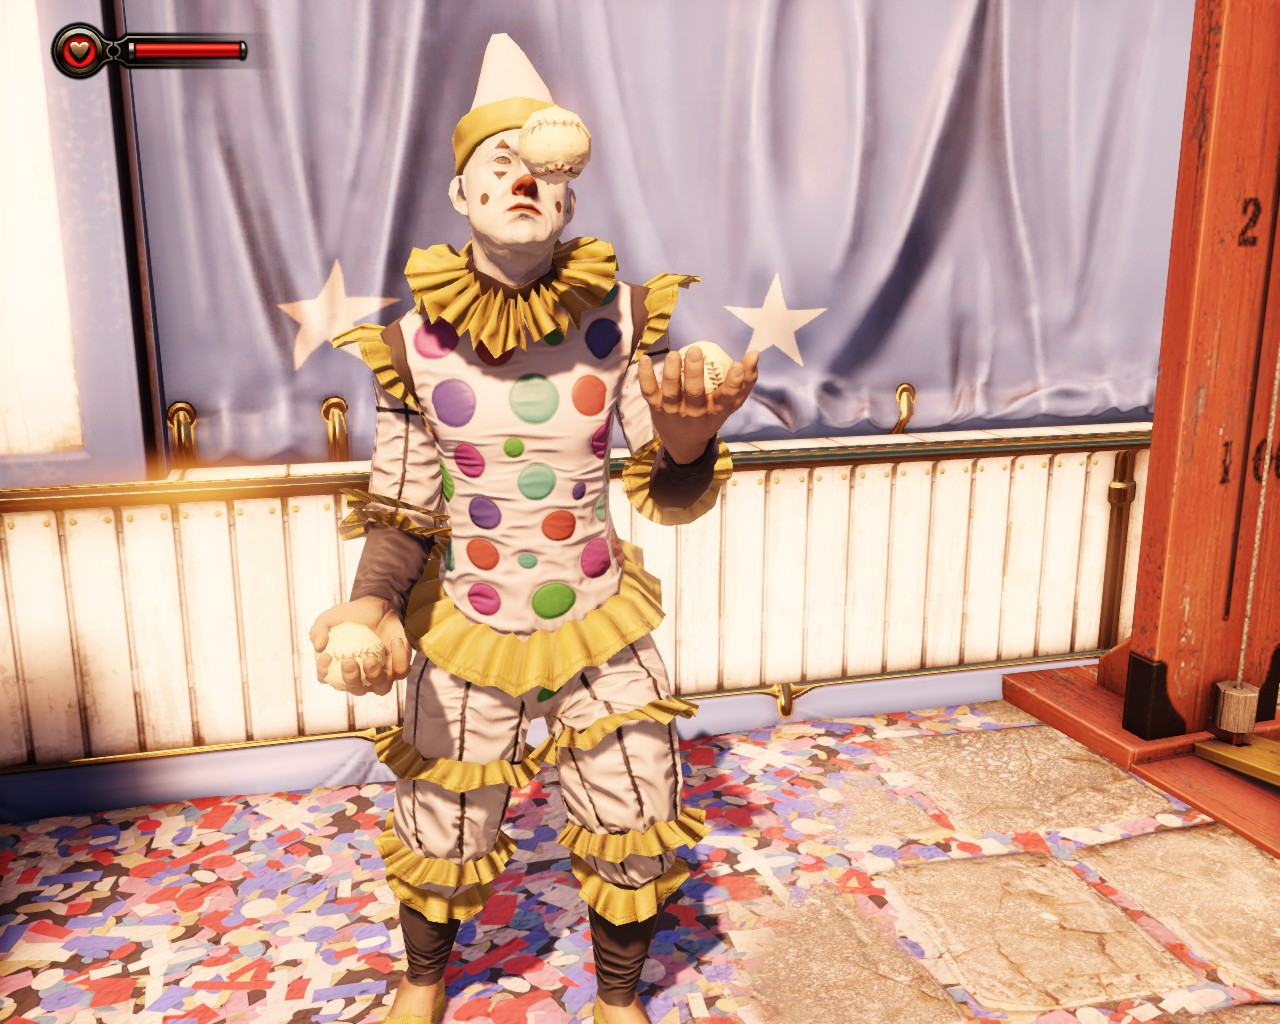 When you're feeling down, stare at a clown.